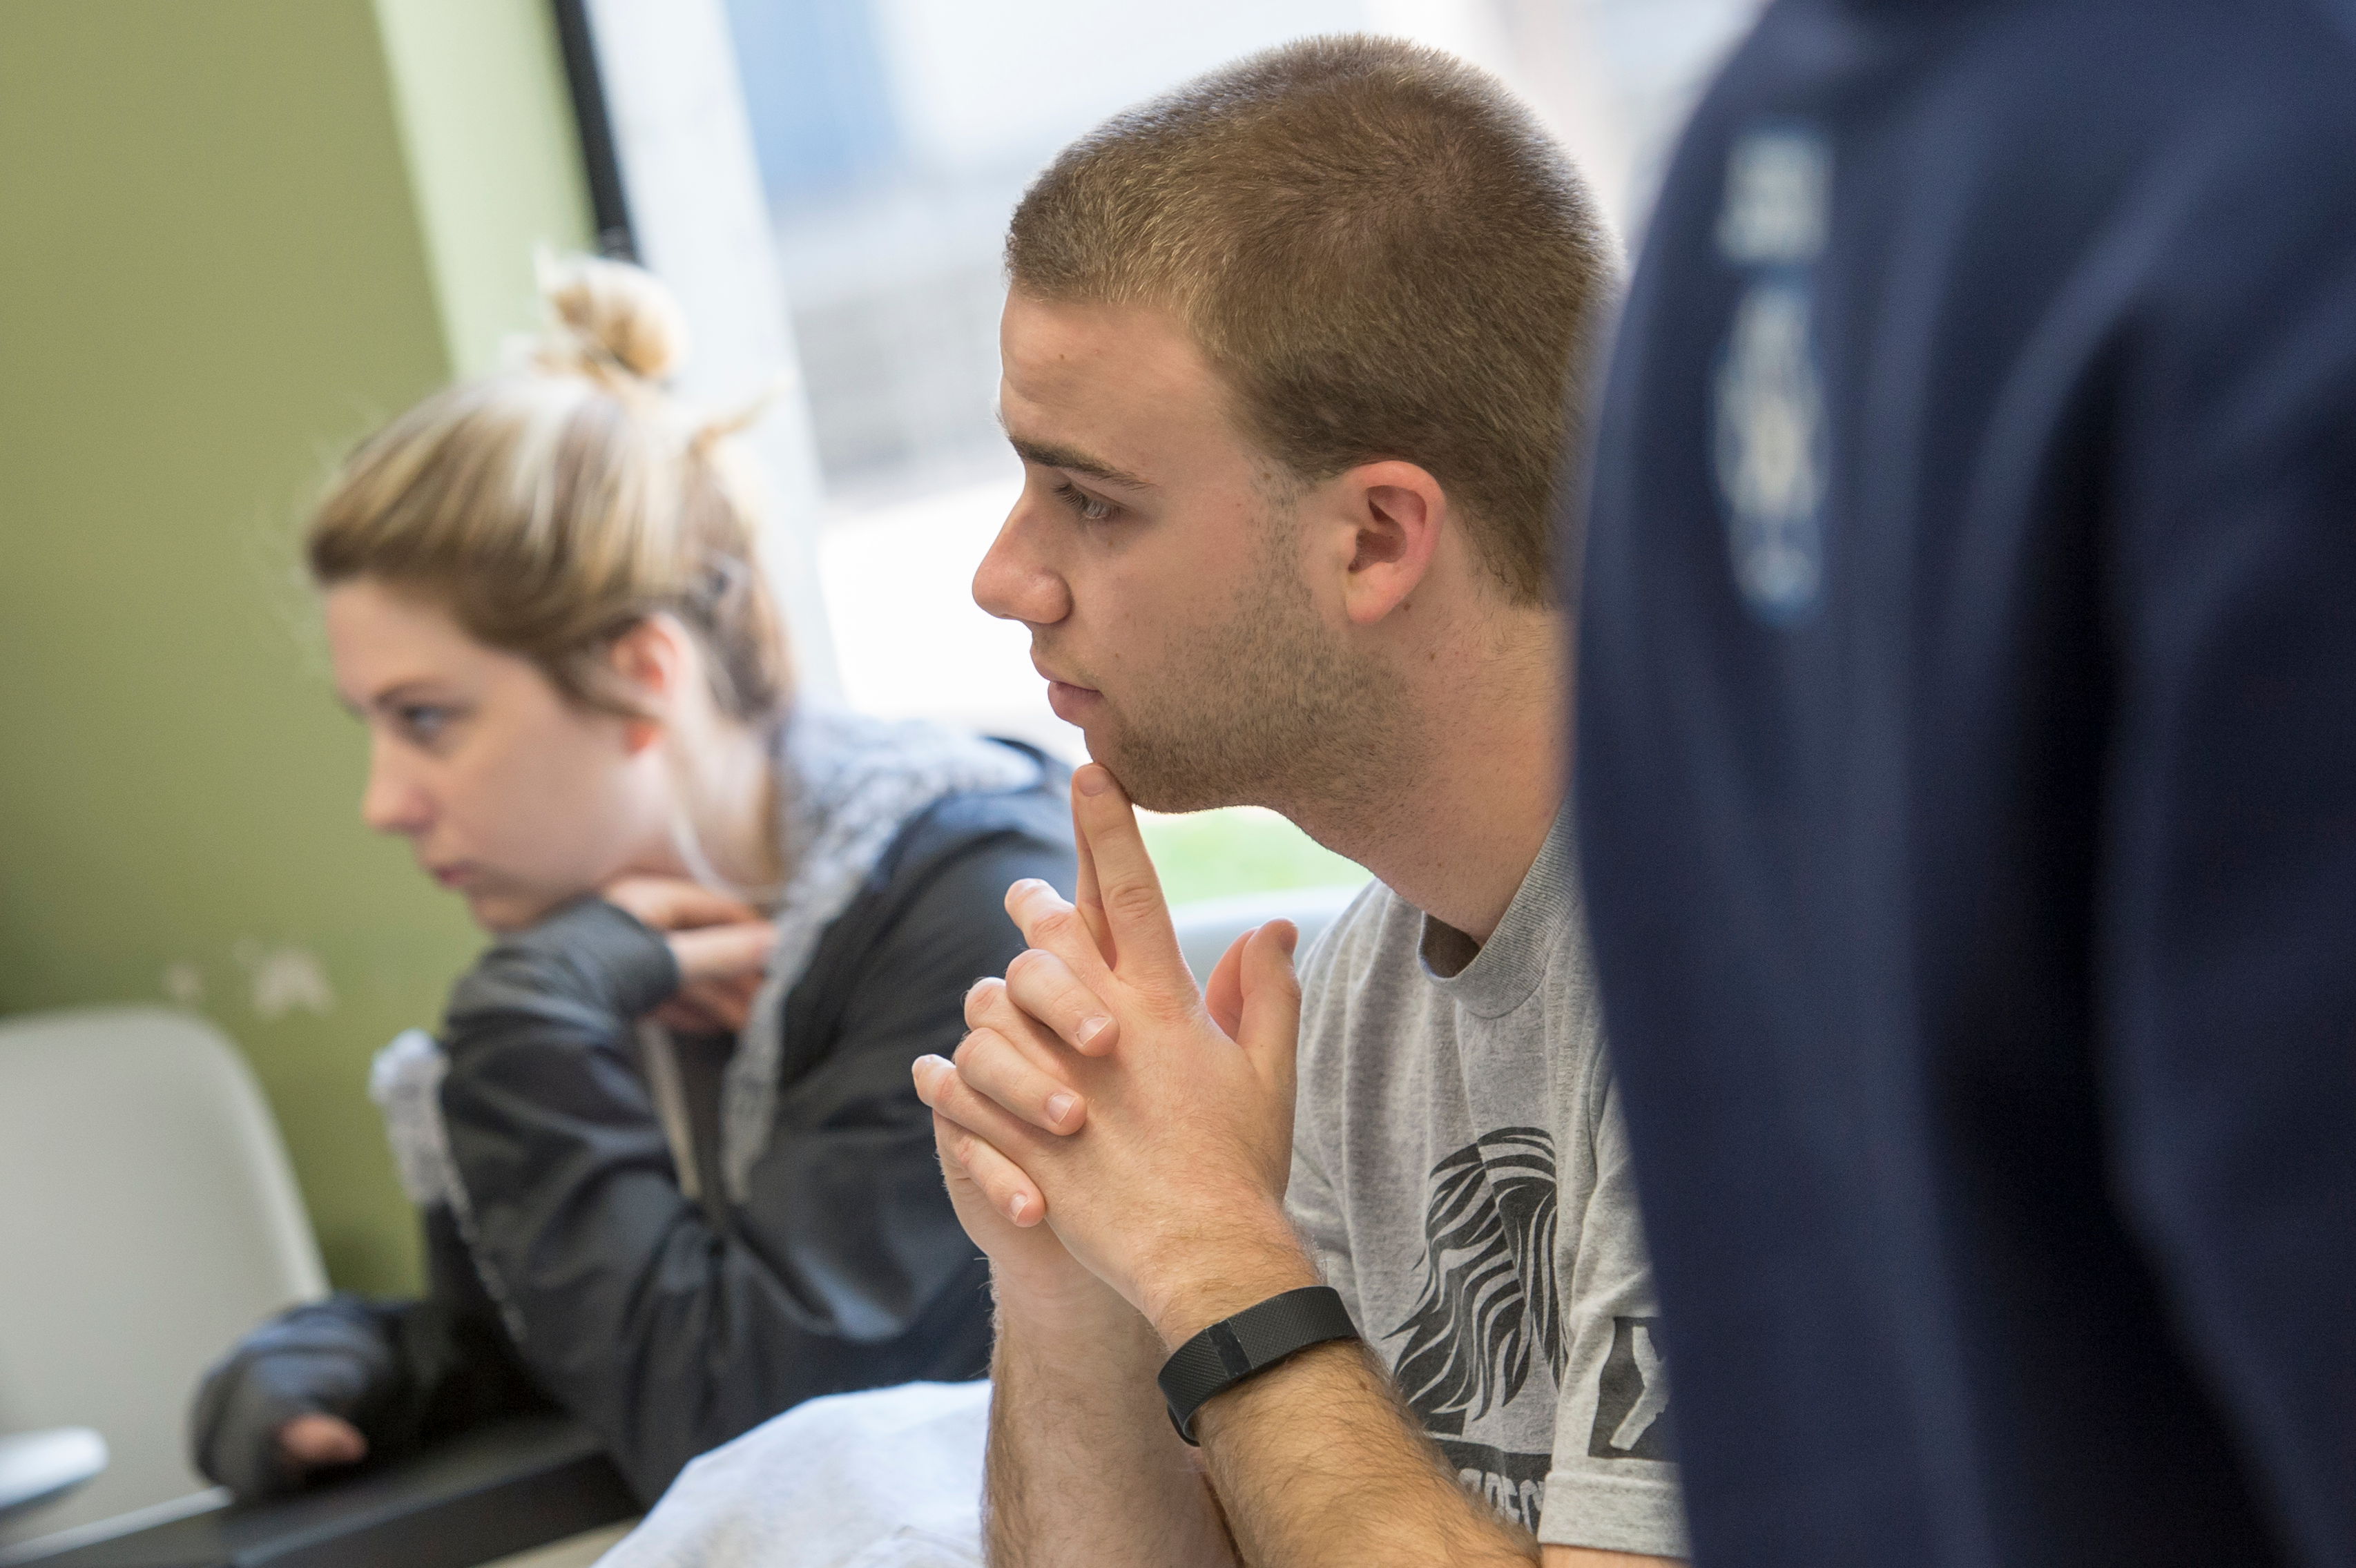 Student seated with elbows on table and clasped fingers on chin listens